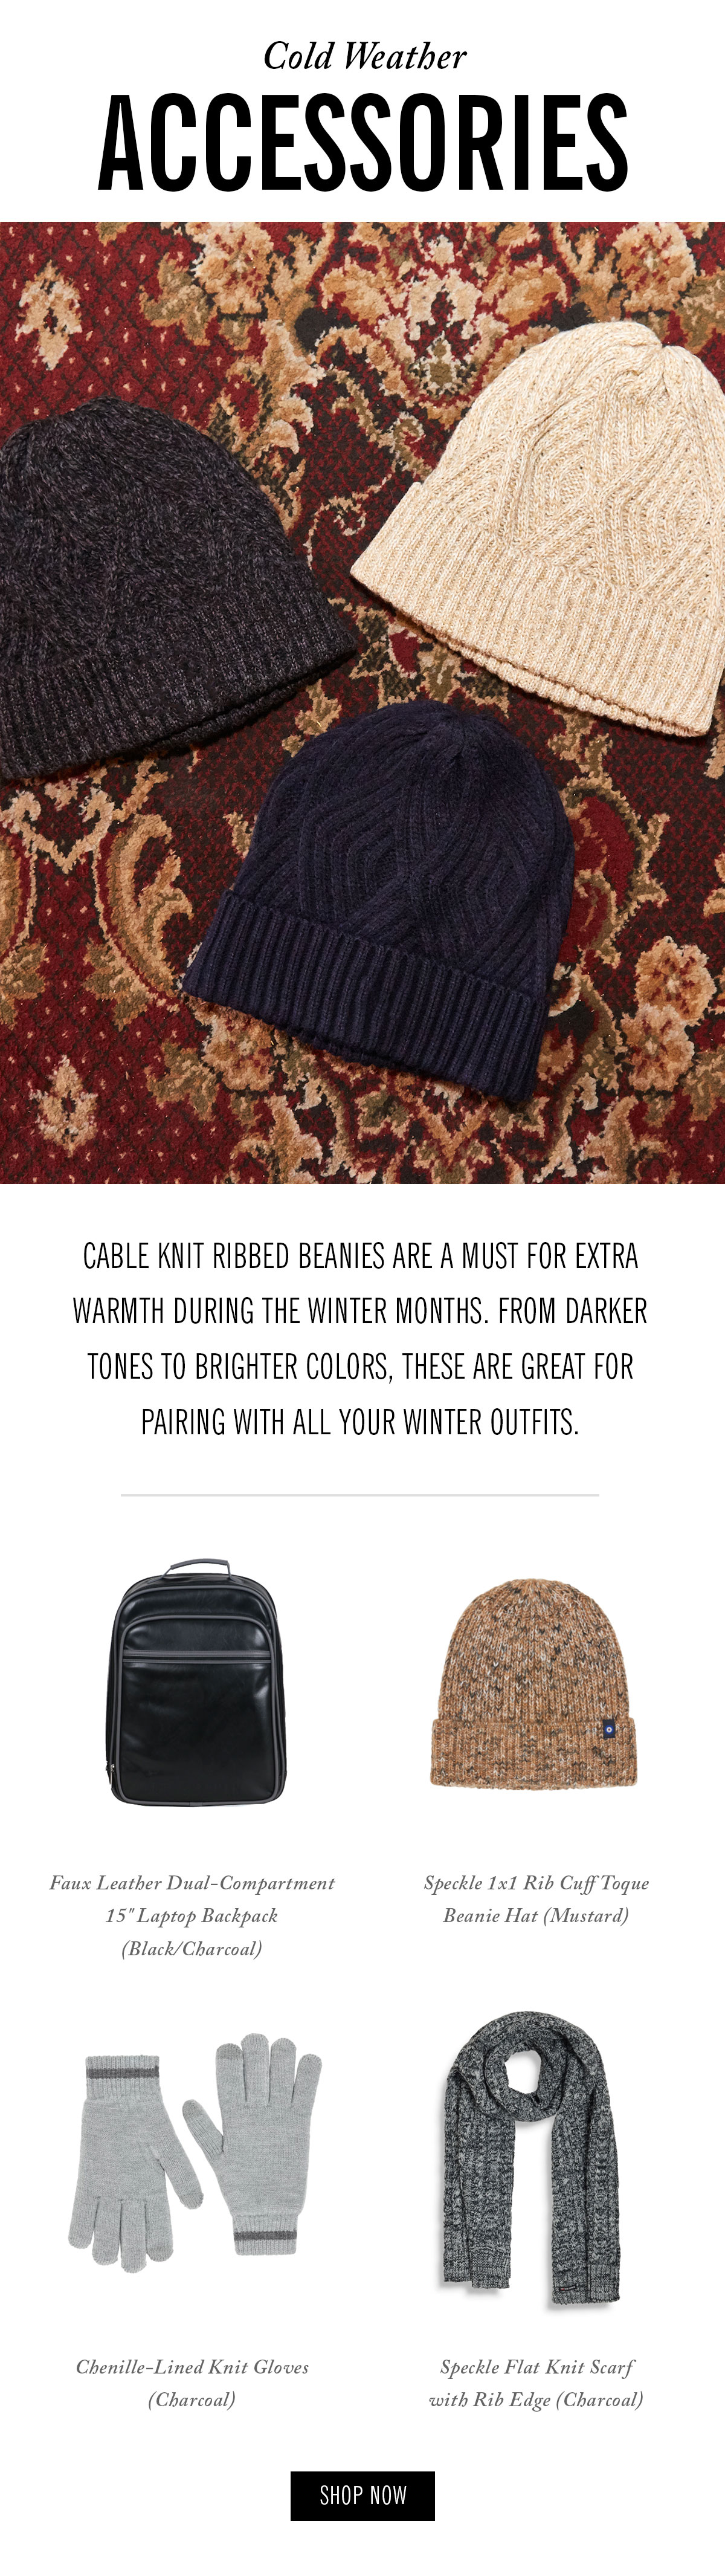 Cold-Weather Accessories | Cable knit ribbed beanies are a must for extra warmth during the winter months. From darker tones to brighter colors, these are great for pairing with all your winter outfits.